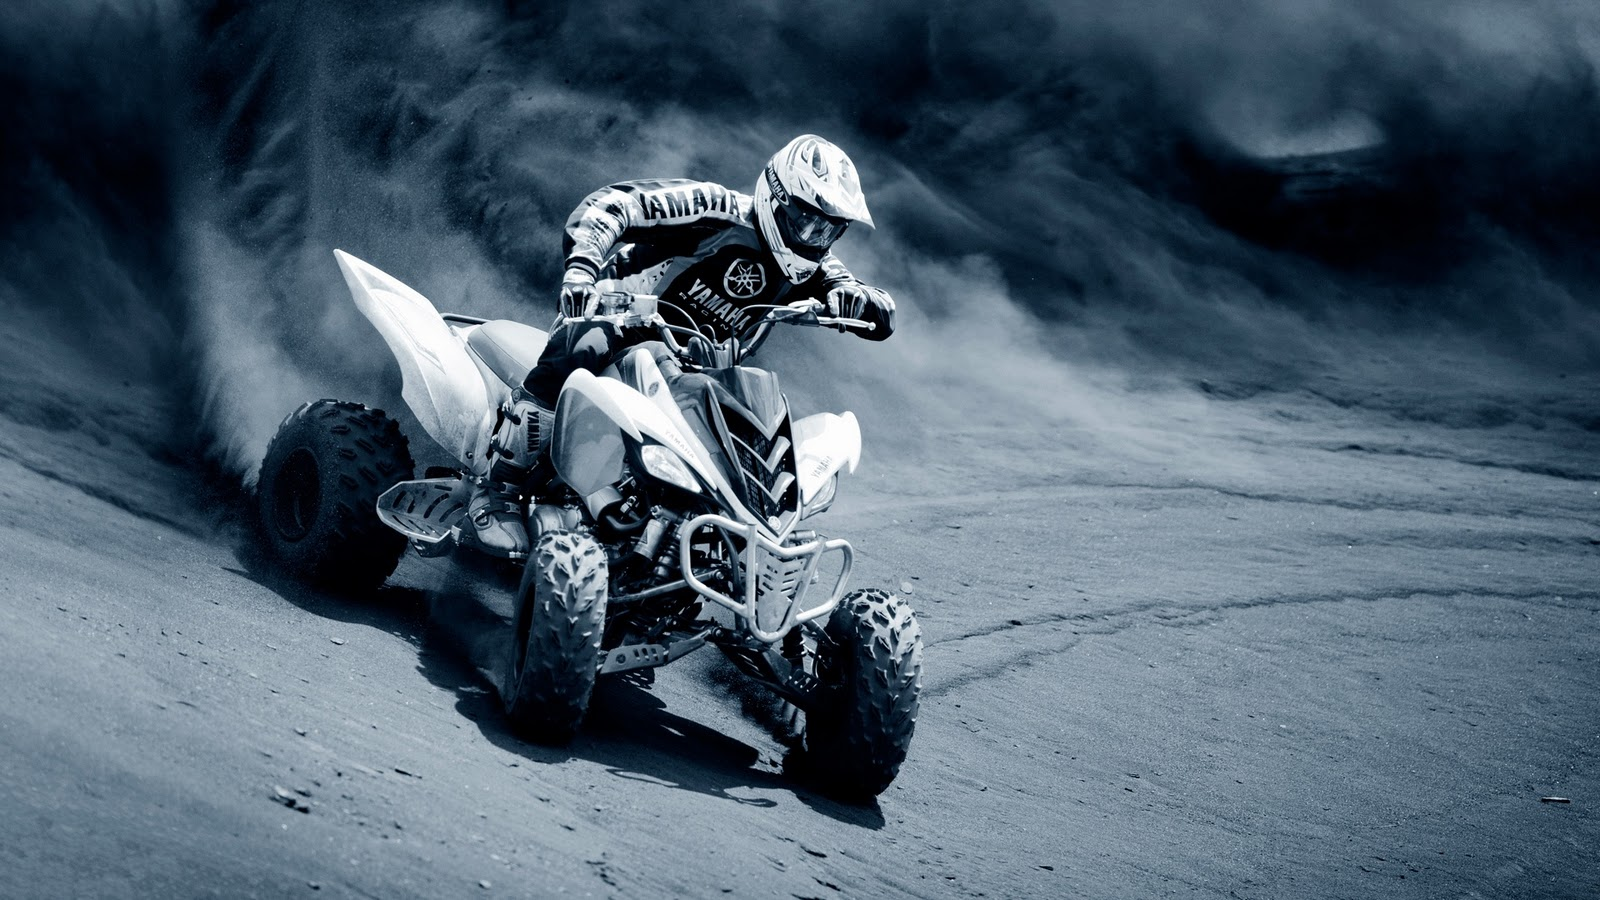 WongSeng HD Wallpapers Cool ATV Sand Drift HD Wallpaper 1600x900